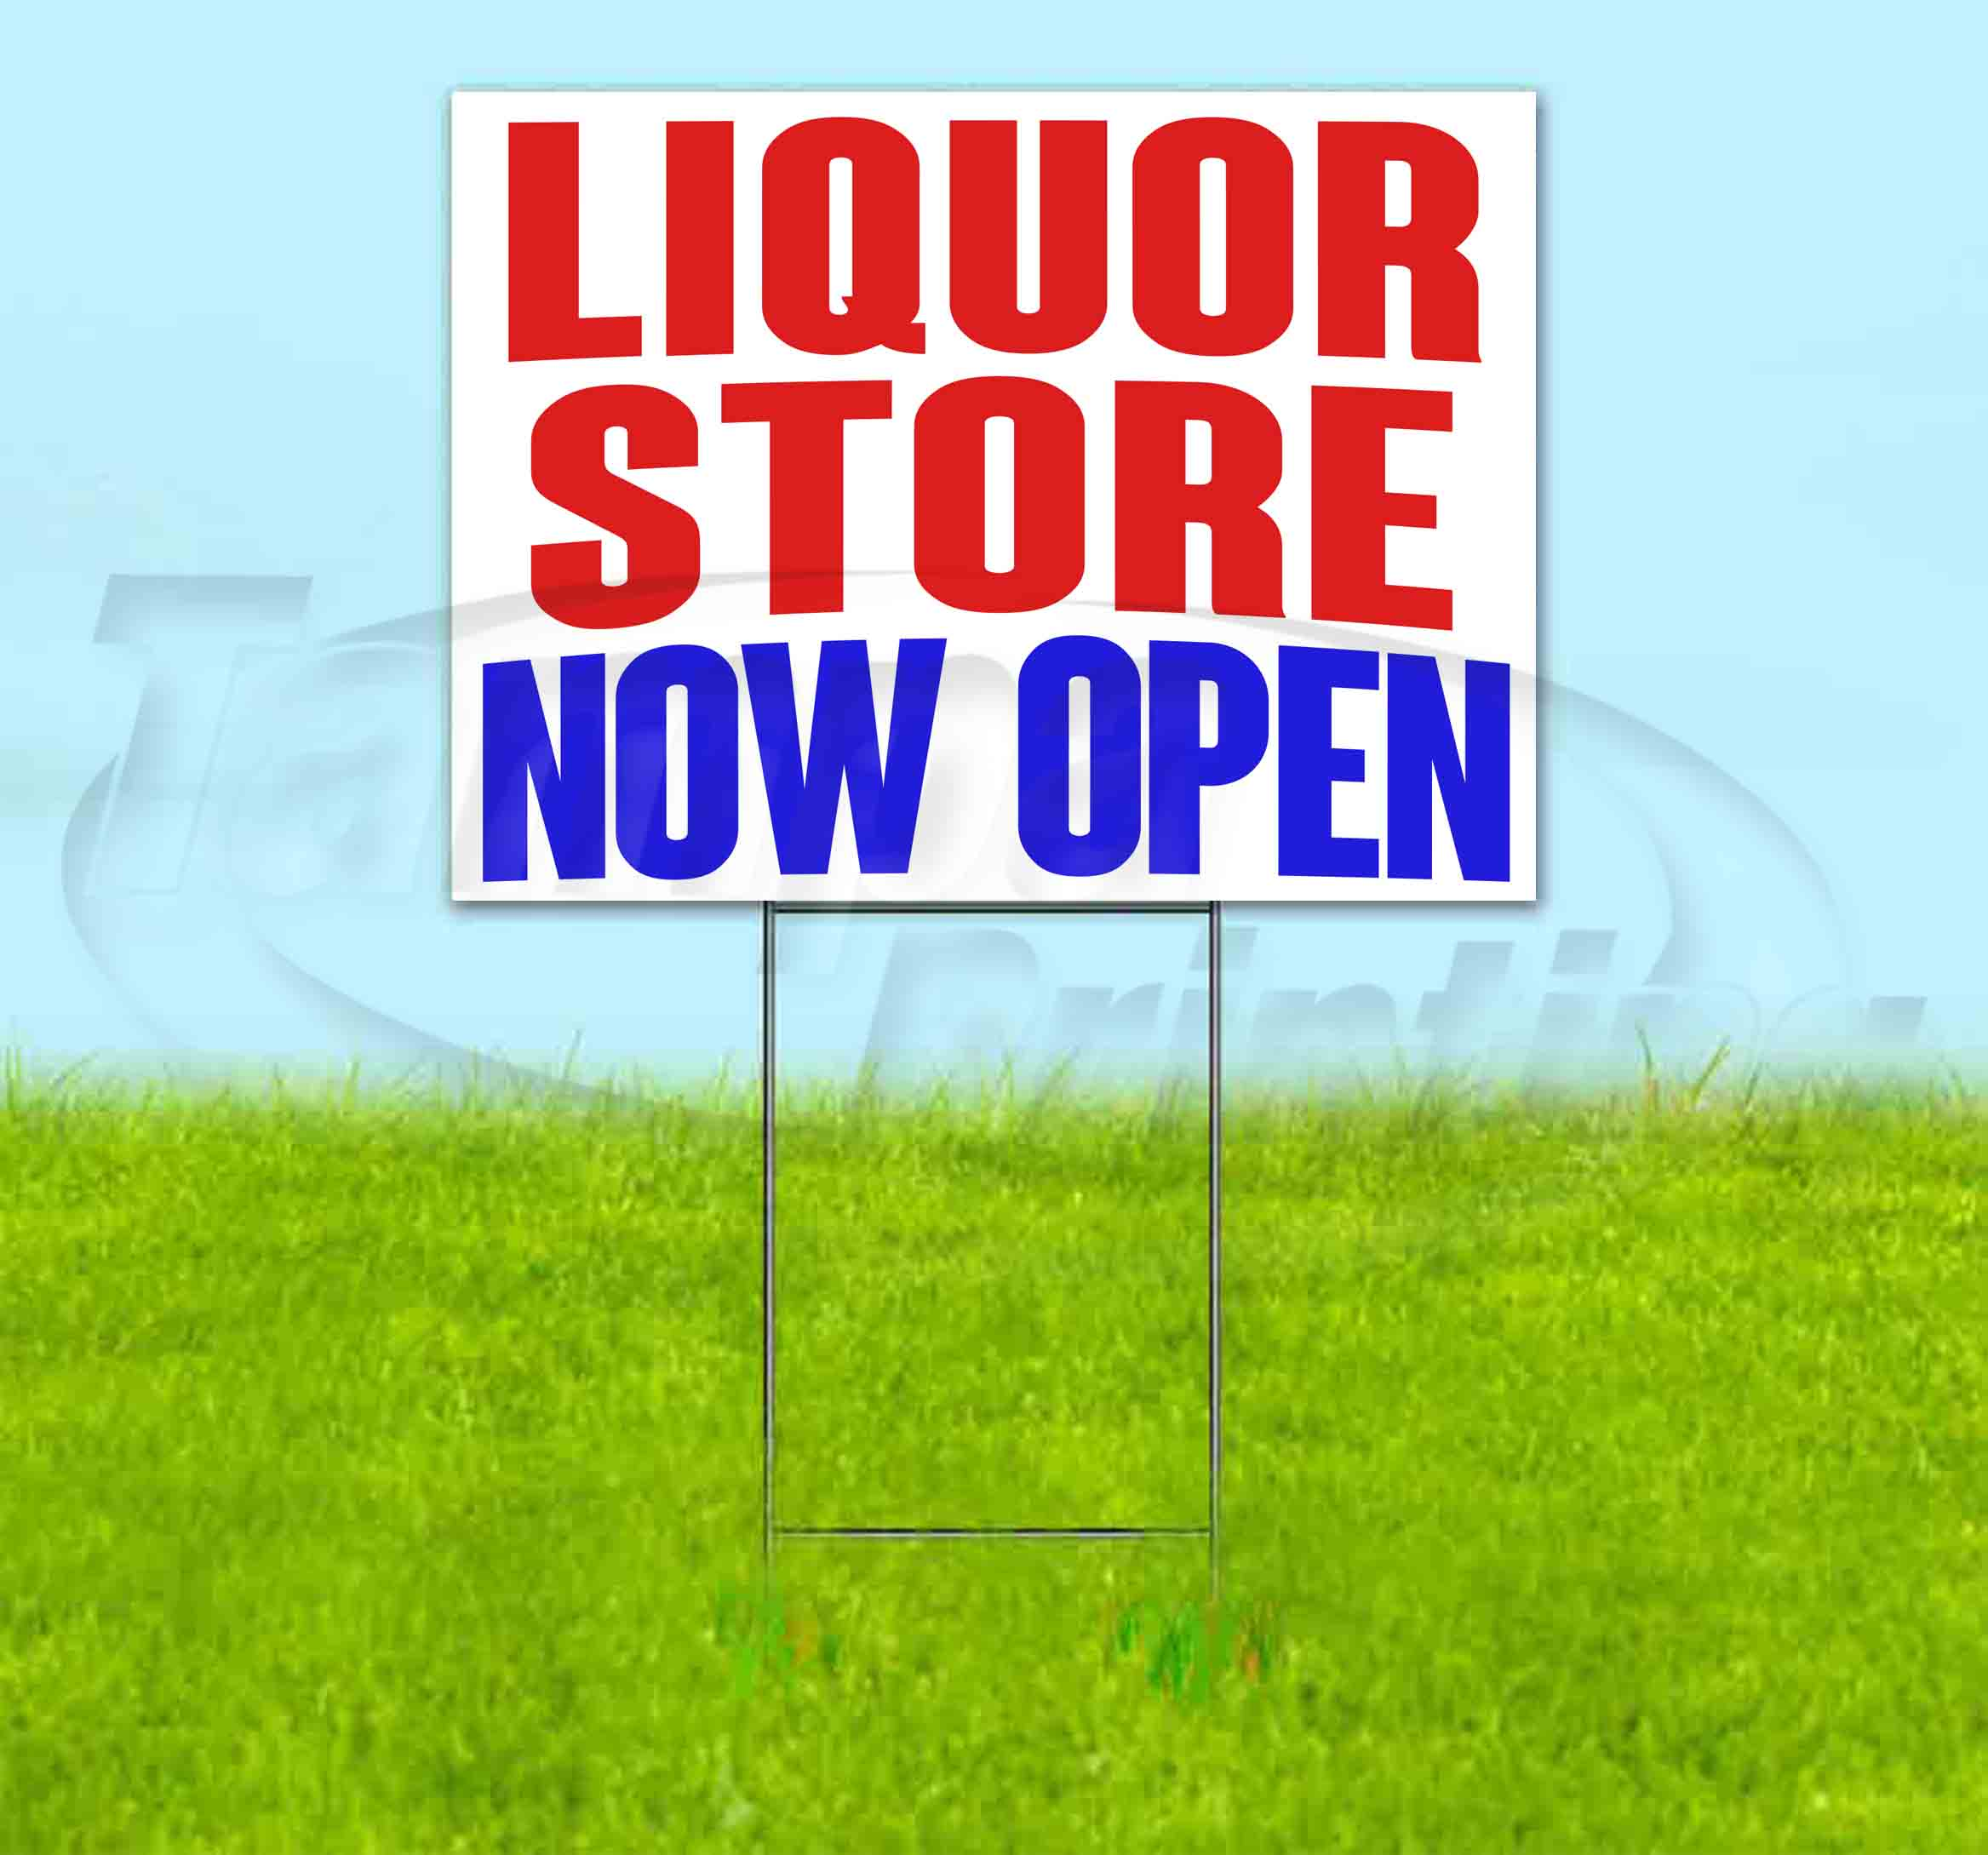 We Are Open 18x24 inches Small Business Lawn Signs Local Shops Yard Signs